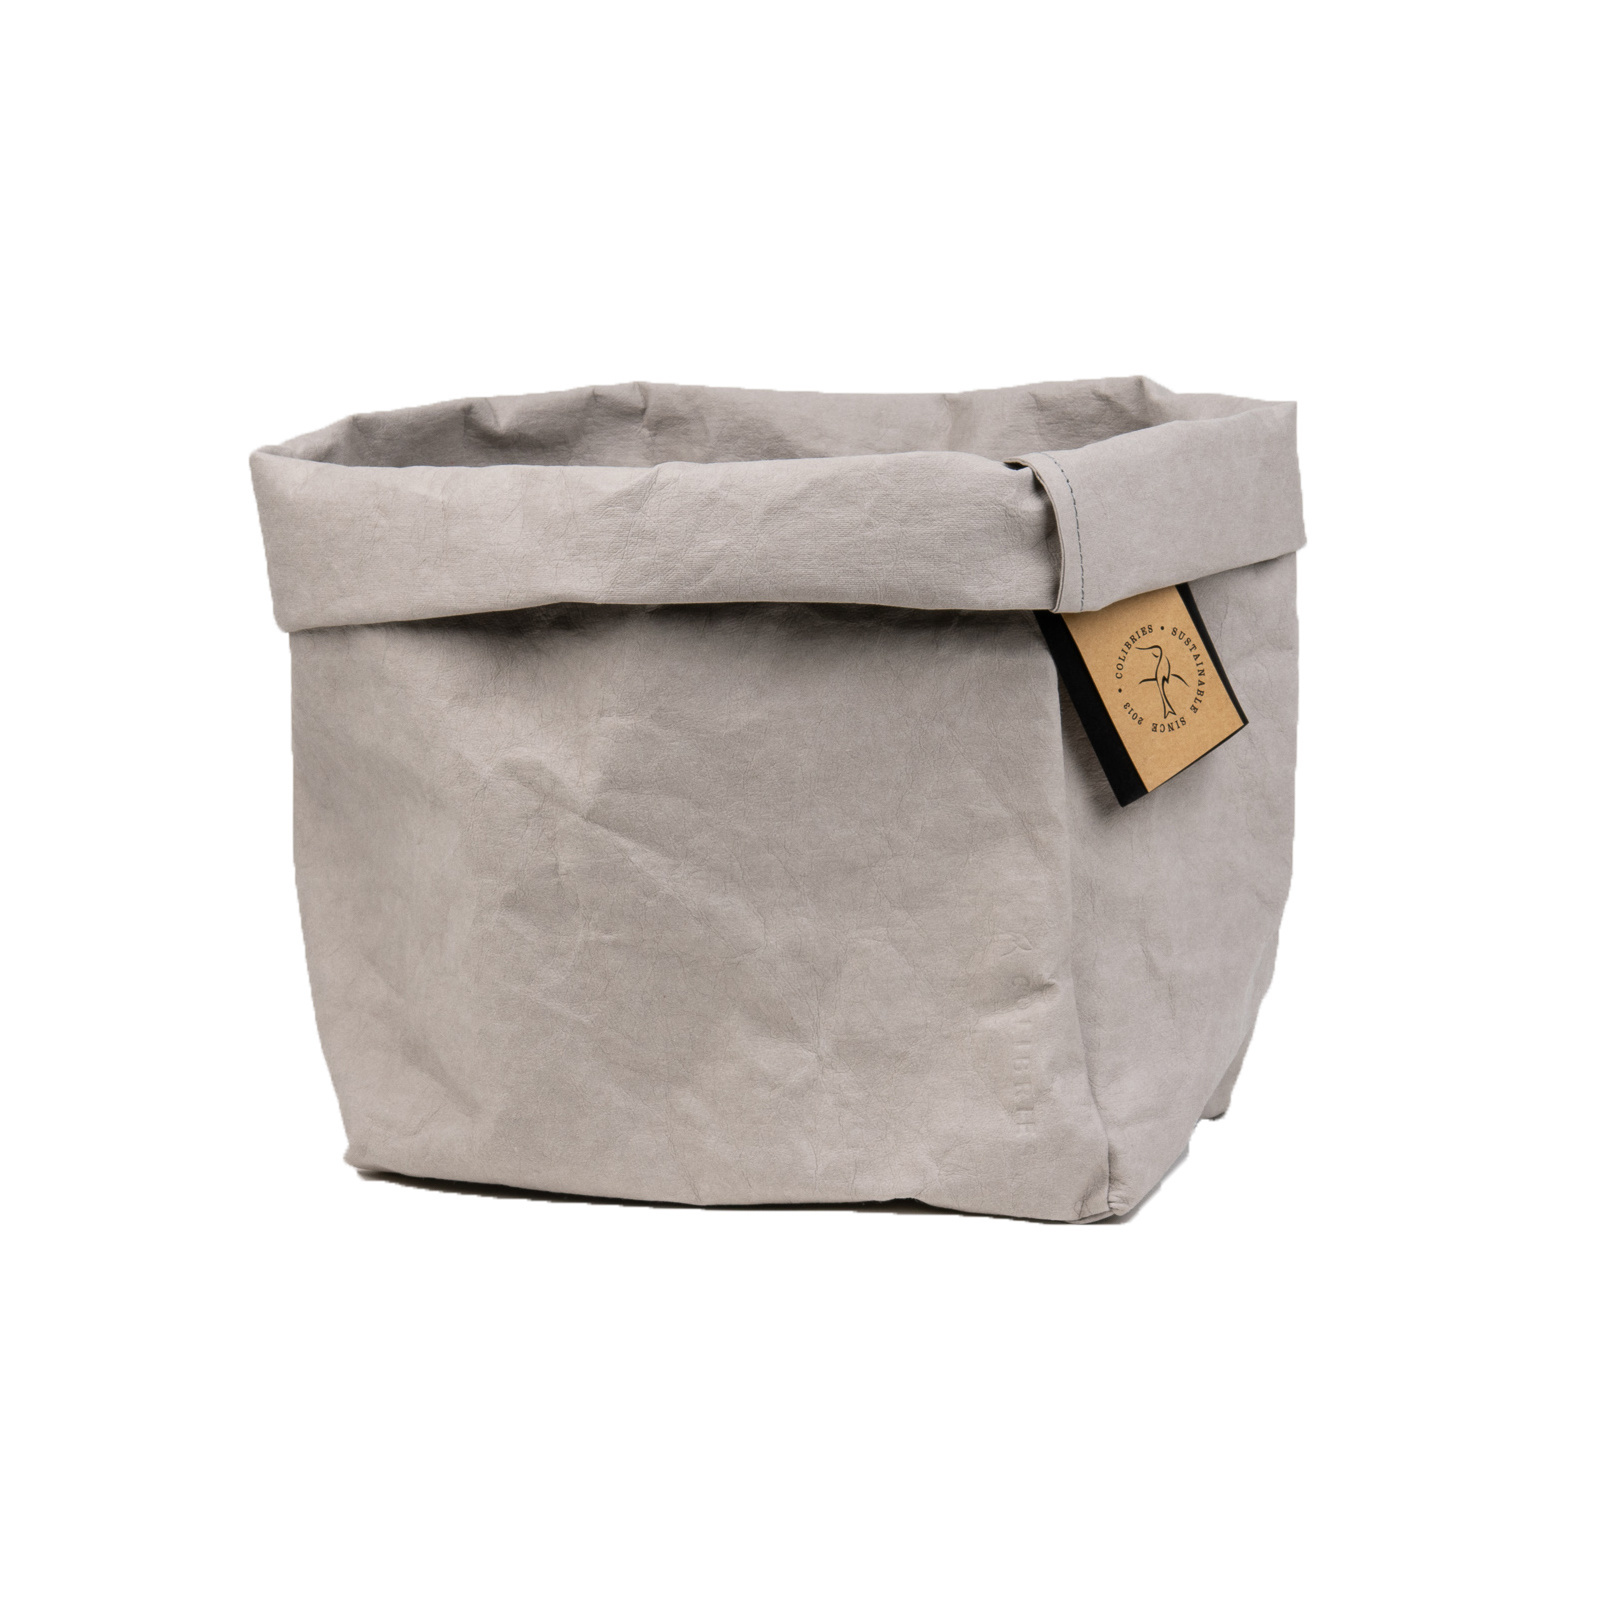 Colibries Colibries Cherry Storage Basket - large - Stone